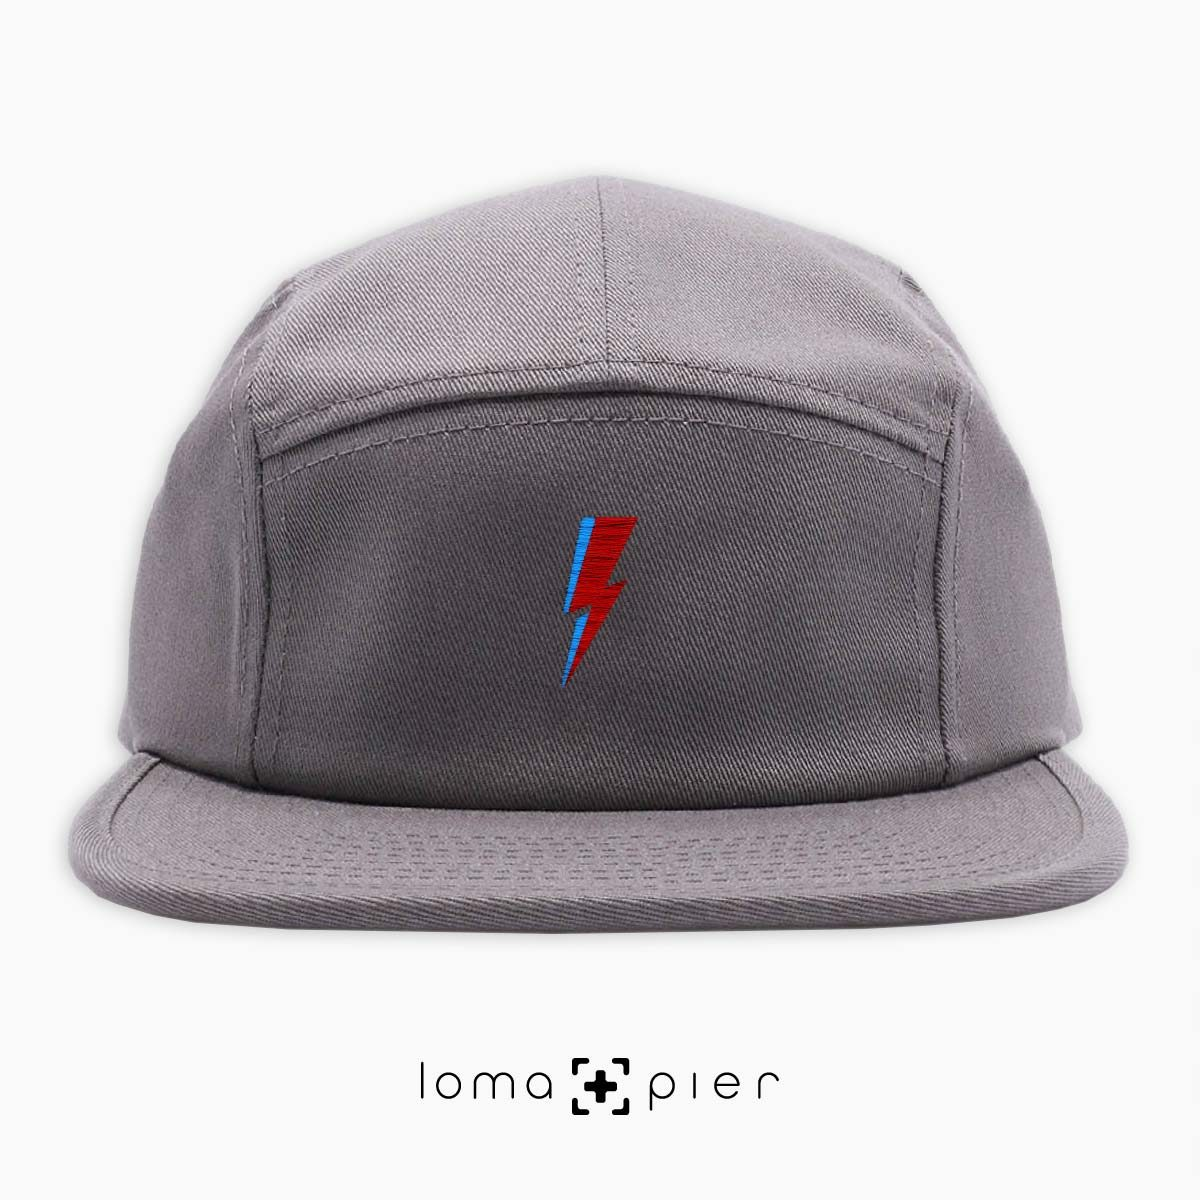 LIGHTNING BOLT icon embroidered on a grey cotton 5-panel hat with multicolor thread by loma+pier hat store